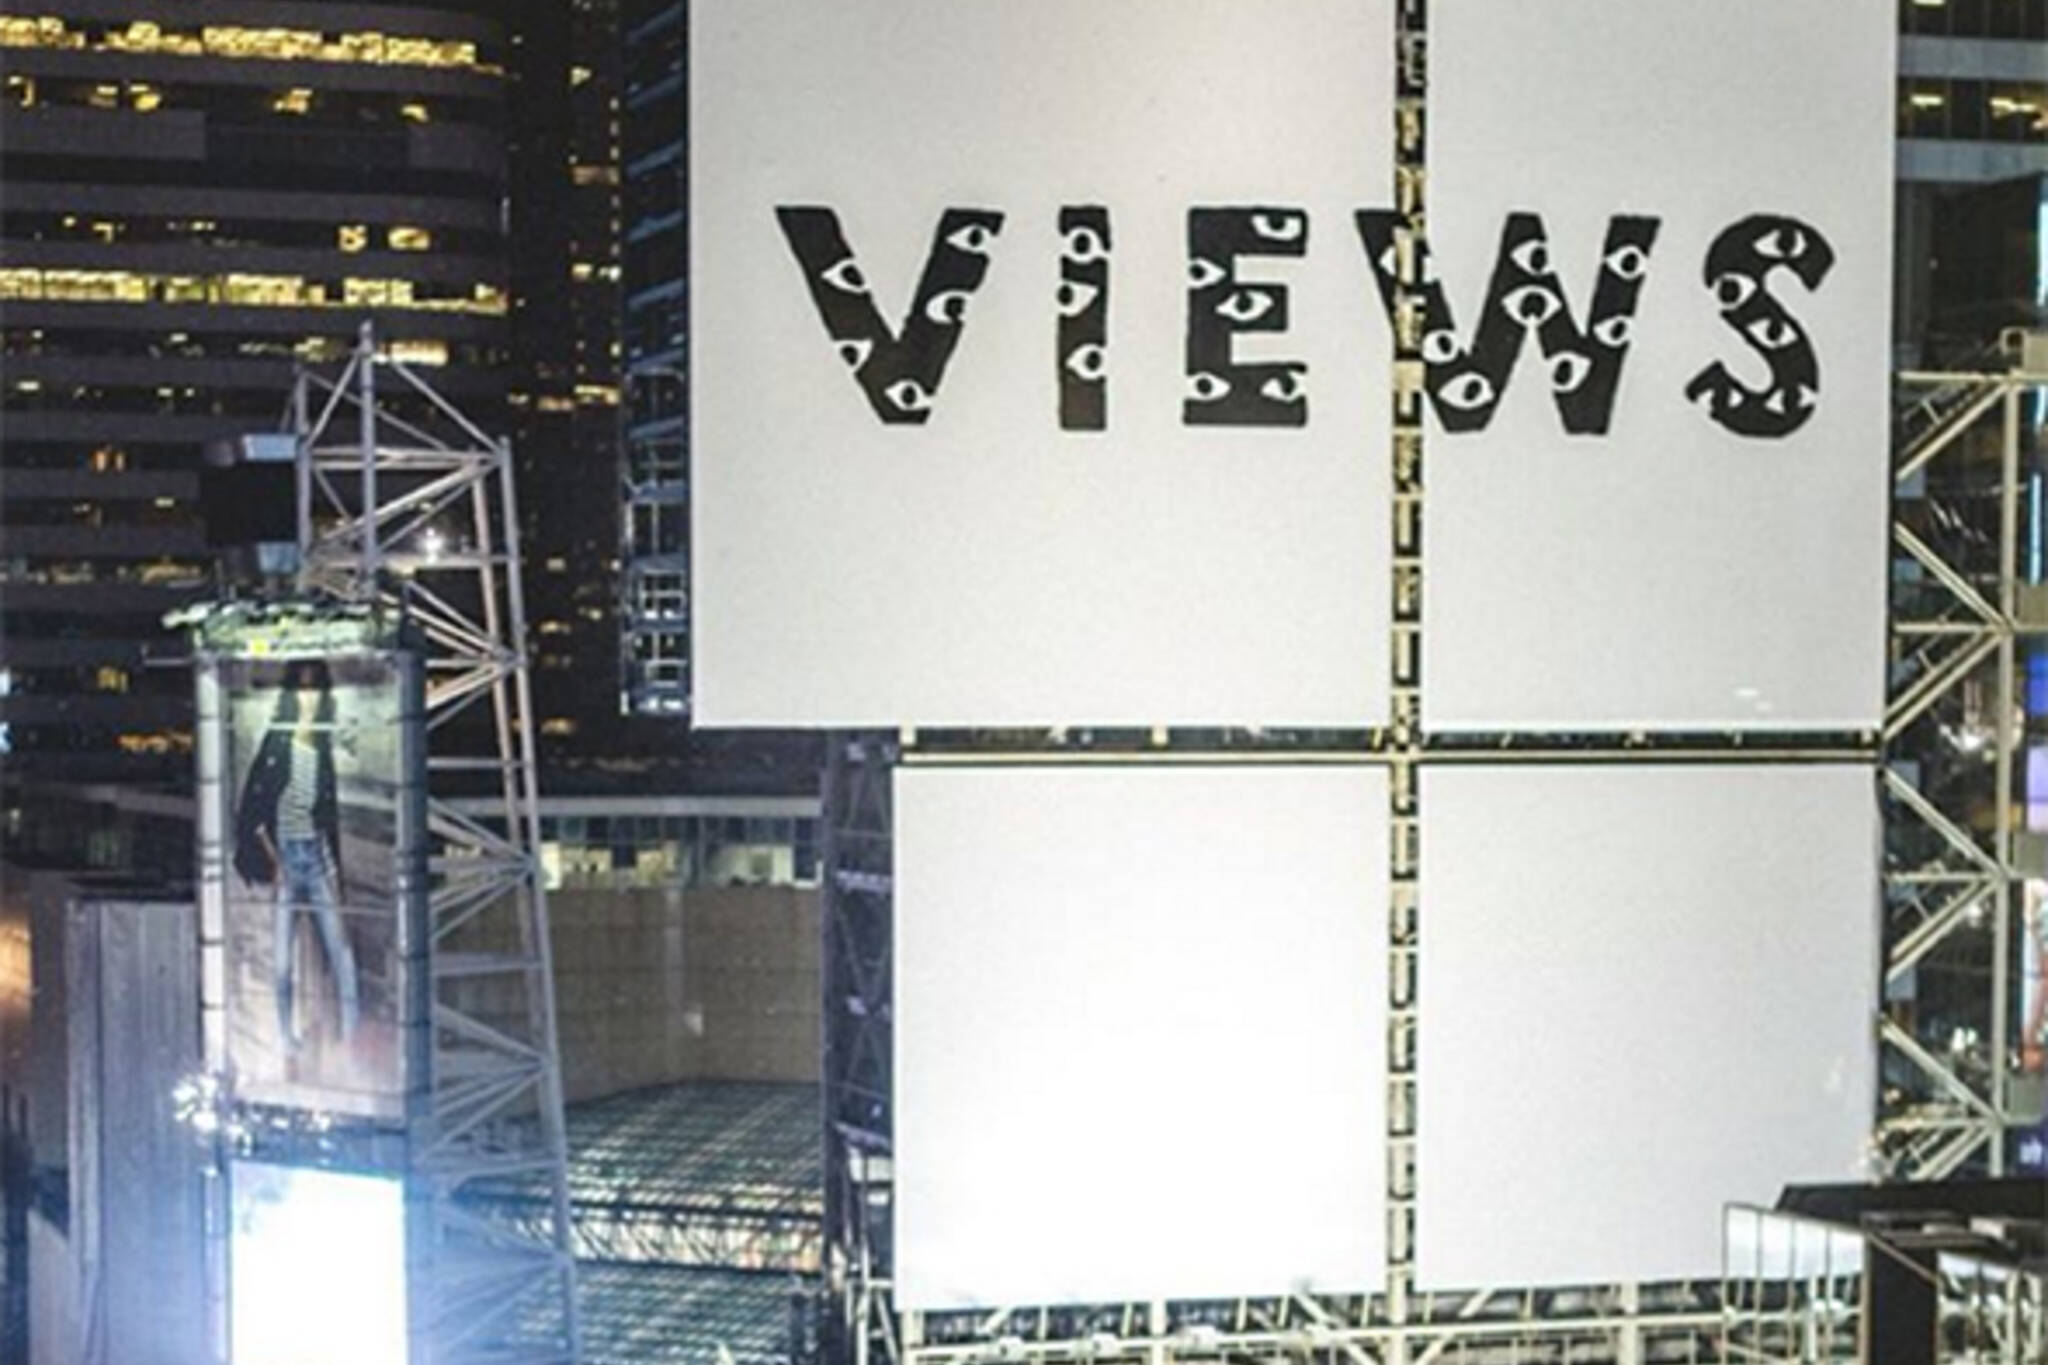 Drake views billboard